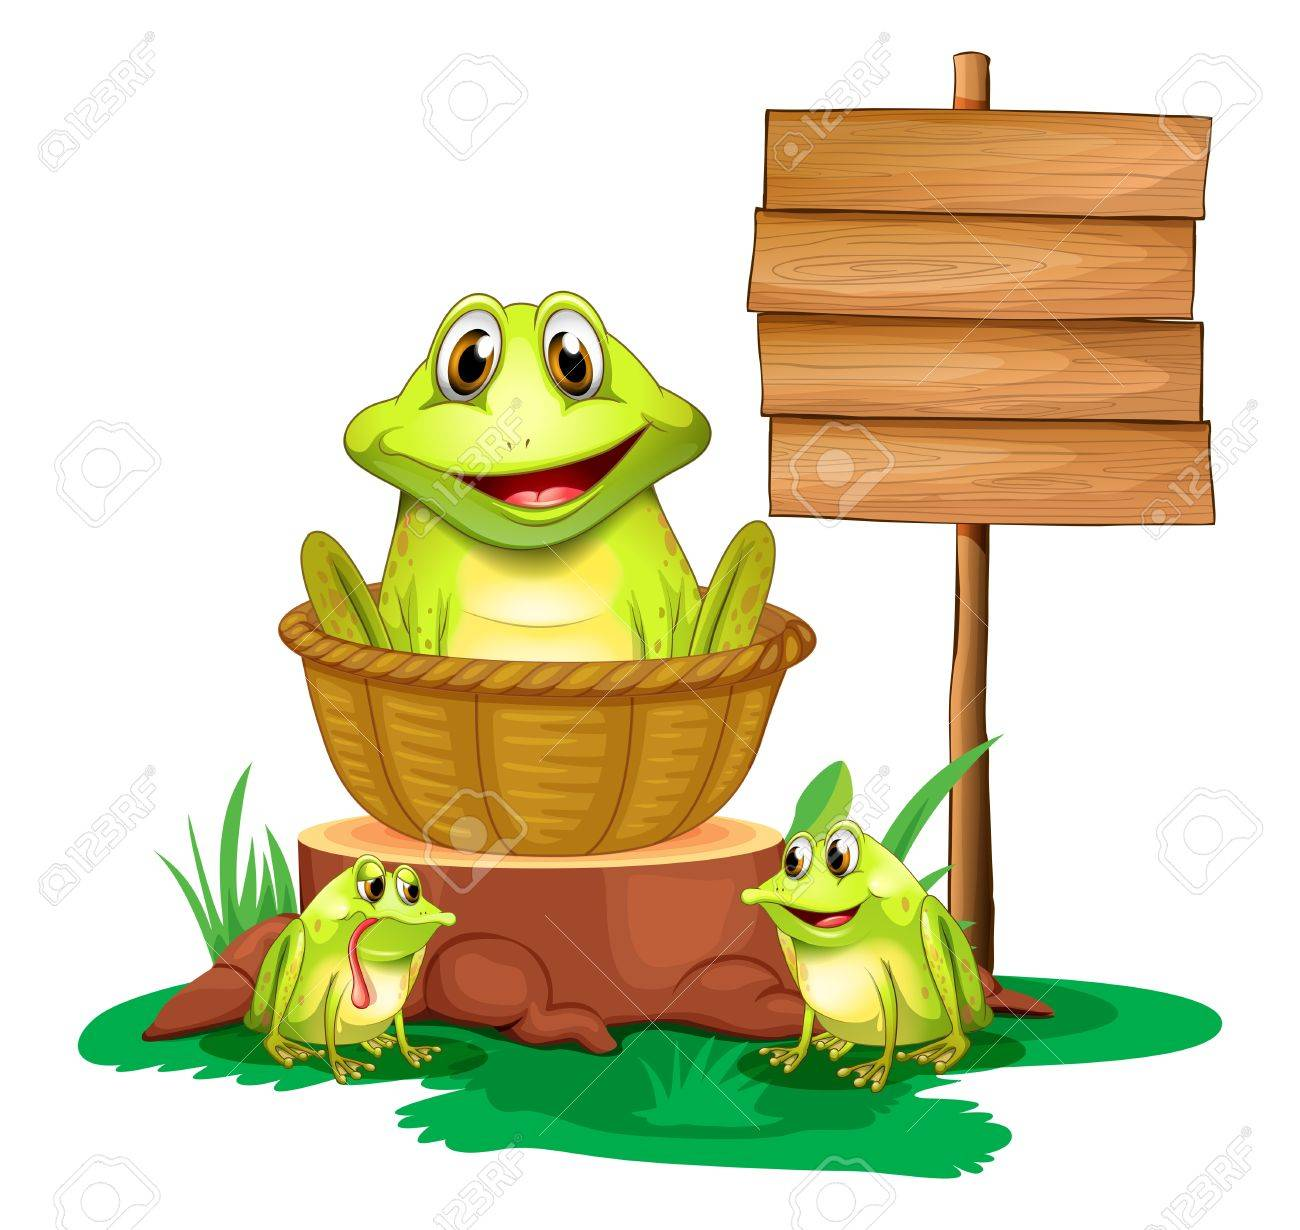 Illustration of a frog inside a basket near the empty signboard on a white background Stock Vector - 18610468